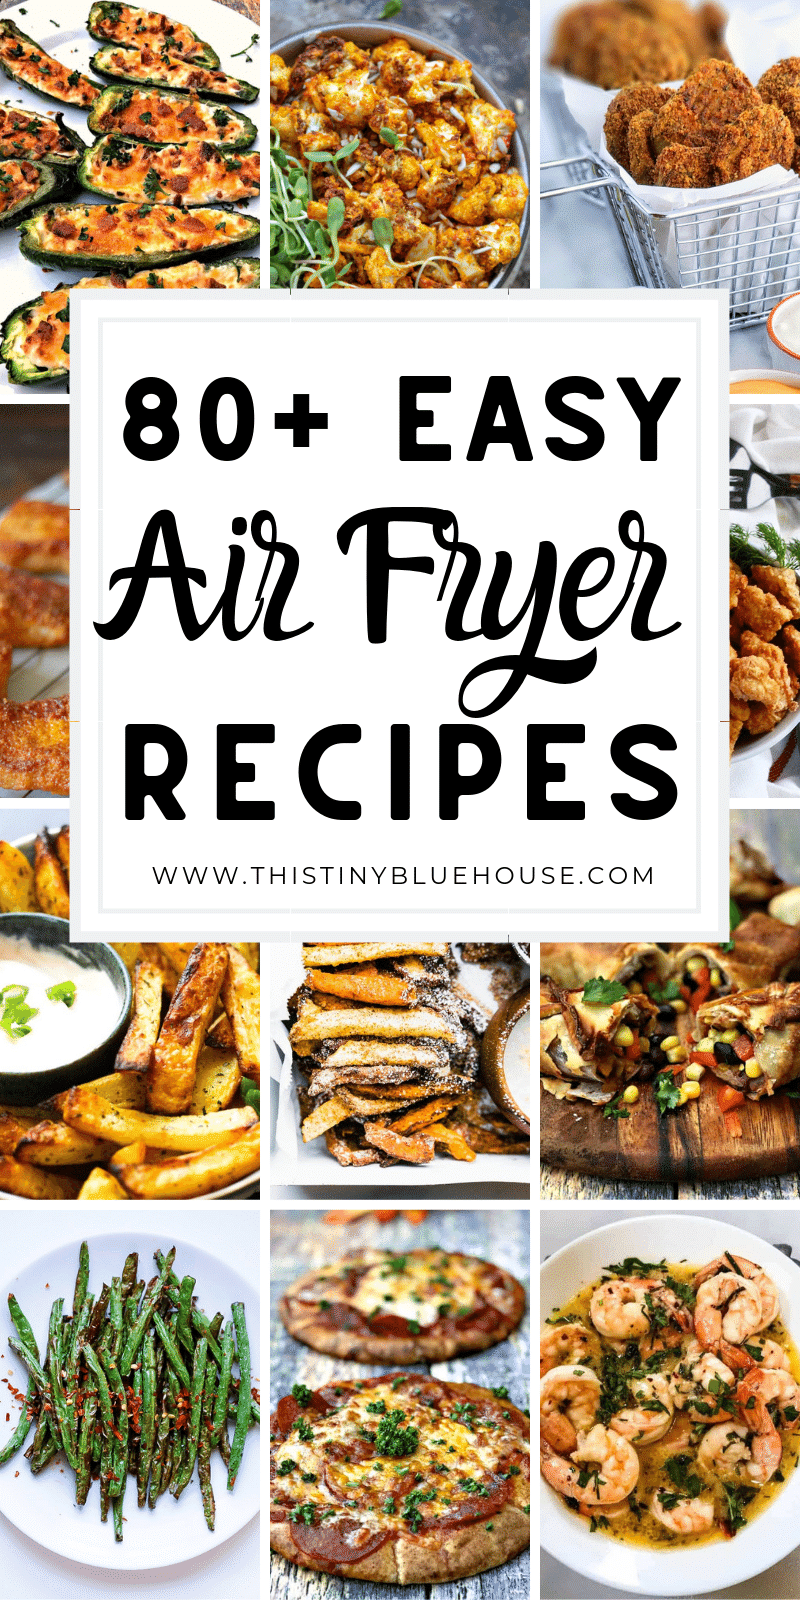 Here are 80+ BEST delicious and healthy air fryer recipes that your family will just love. These easy best air fryer recipes are a guaranteed hit! #airfryerrecipes #airfryerrecipeshealthy #airfryerrecipesvegetables #airfryerrecipeseasy #airfryerrecipespotatoes #simpleairfryerrecipes